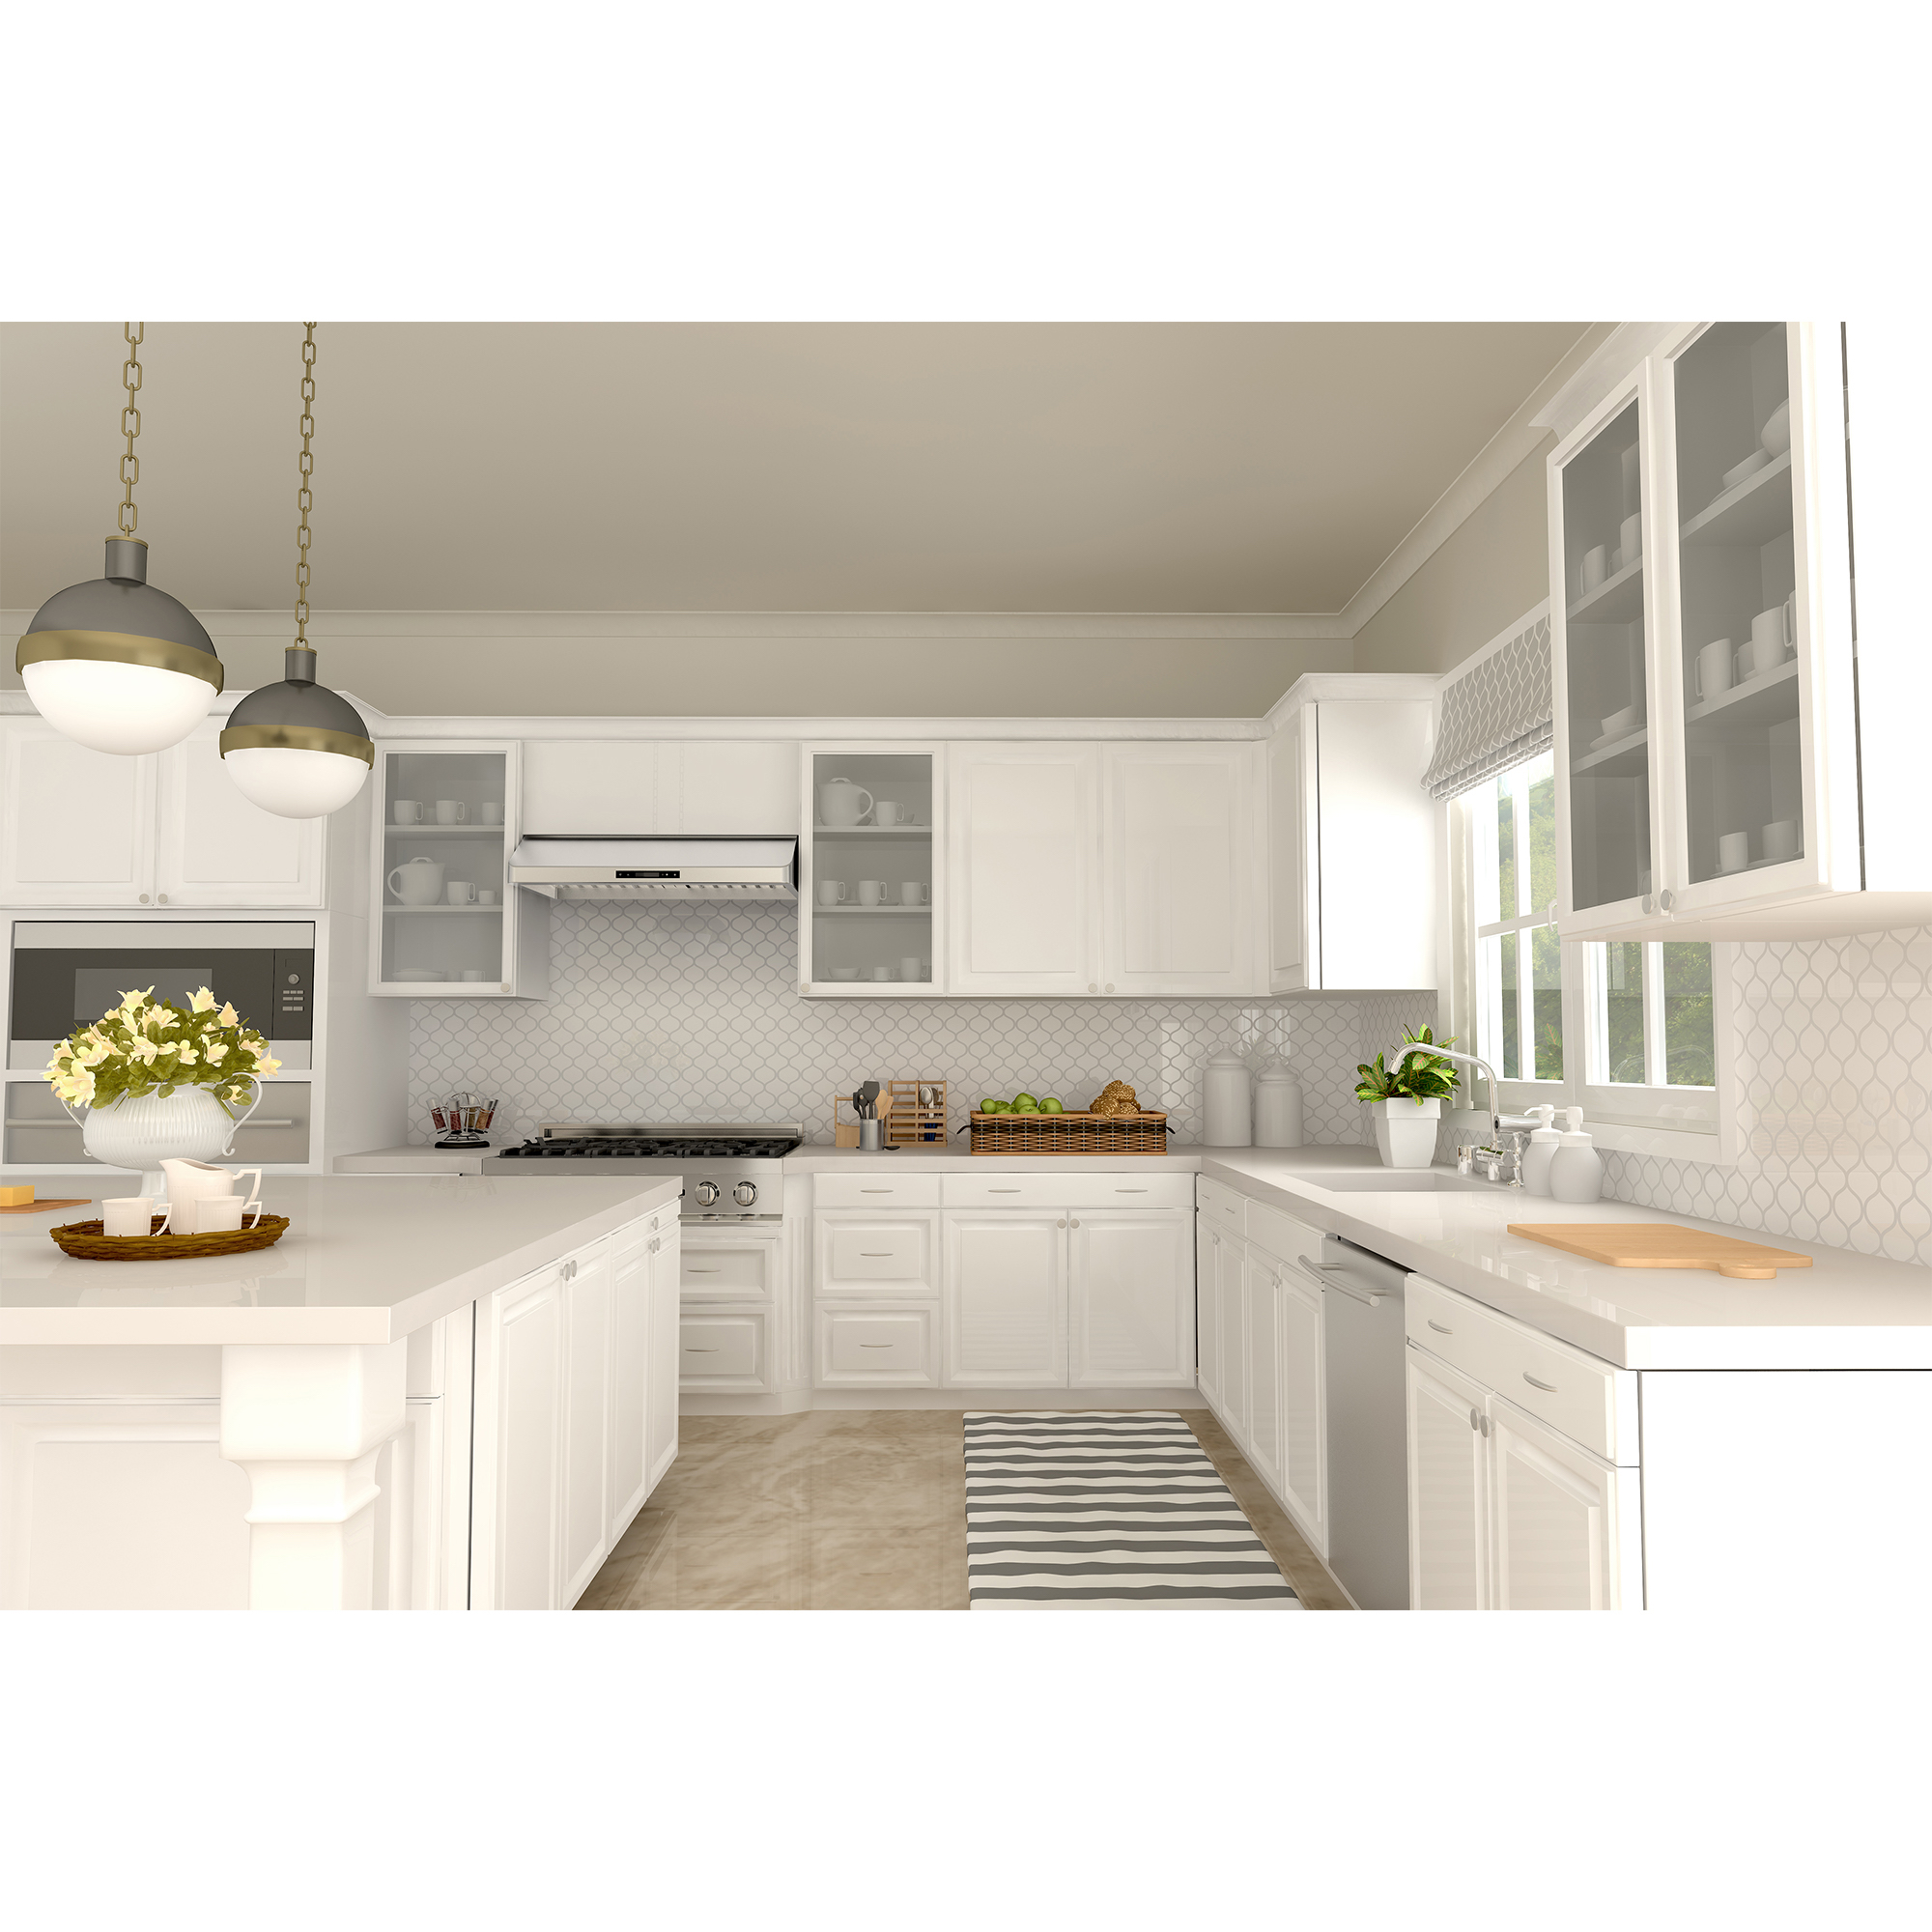 zline-stainless-steel-under-cabinet-range-hood-619-kitchen-updated 2.jpg